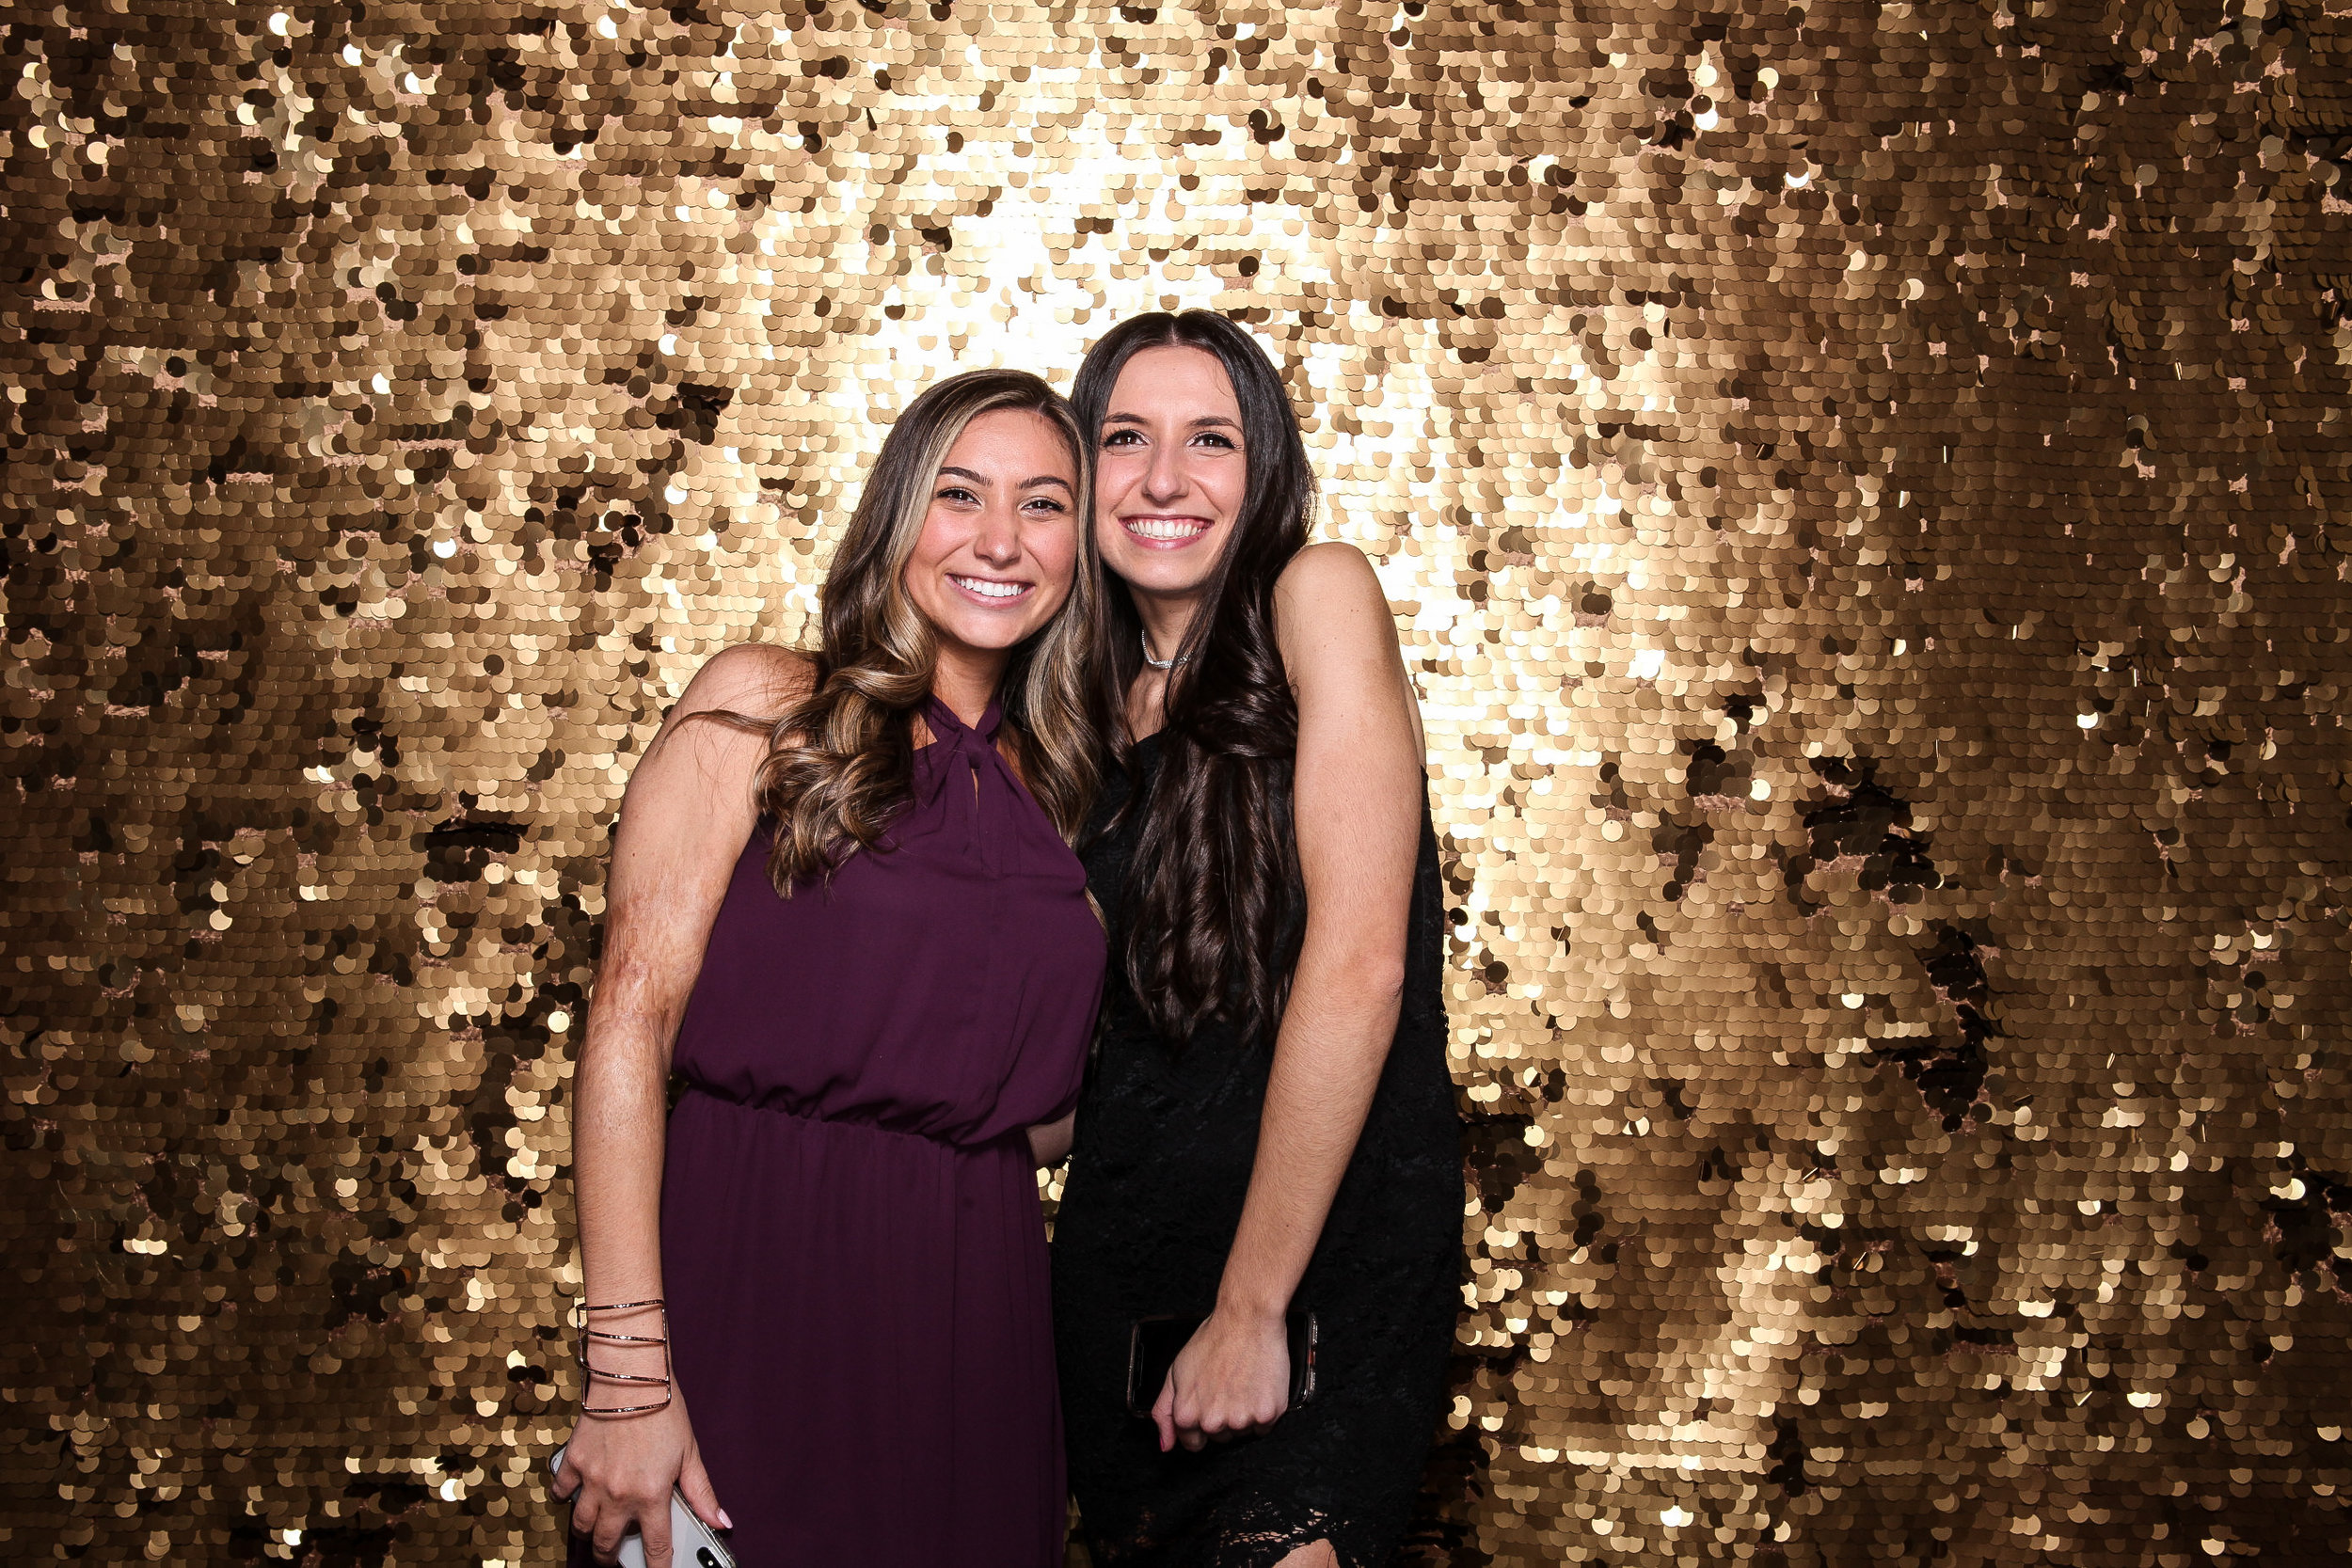 20190503_Adelphi_Senior_Formal-356.jpg